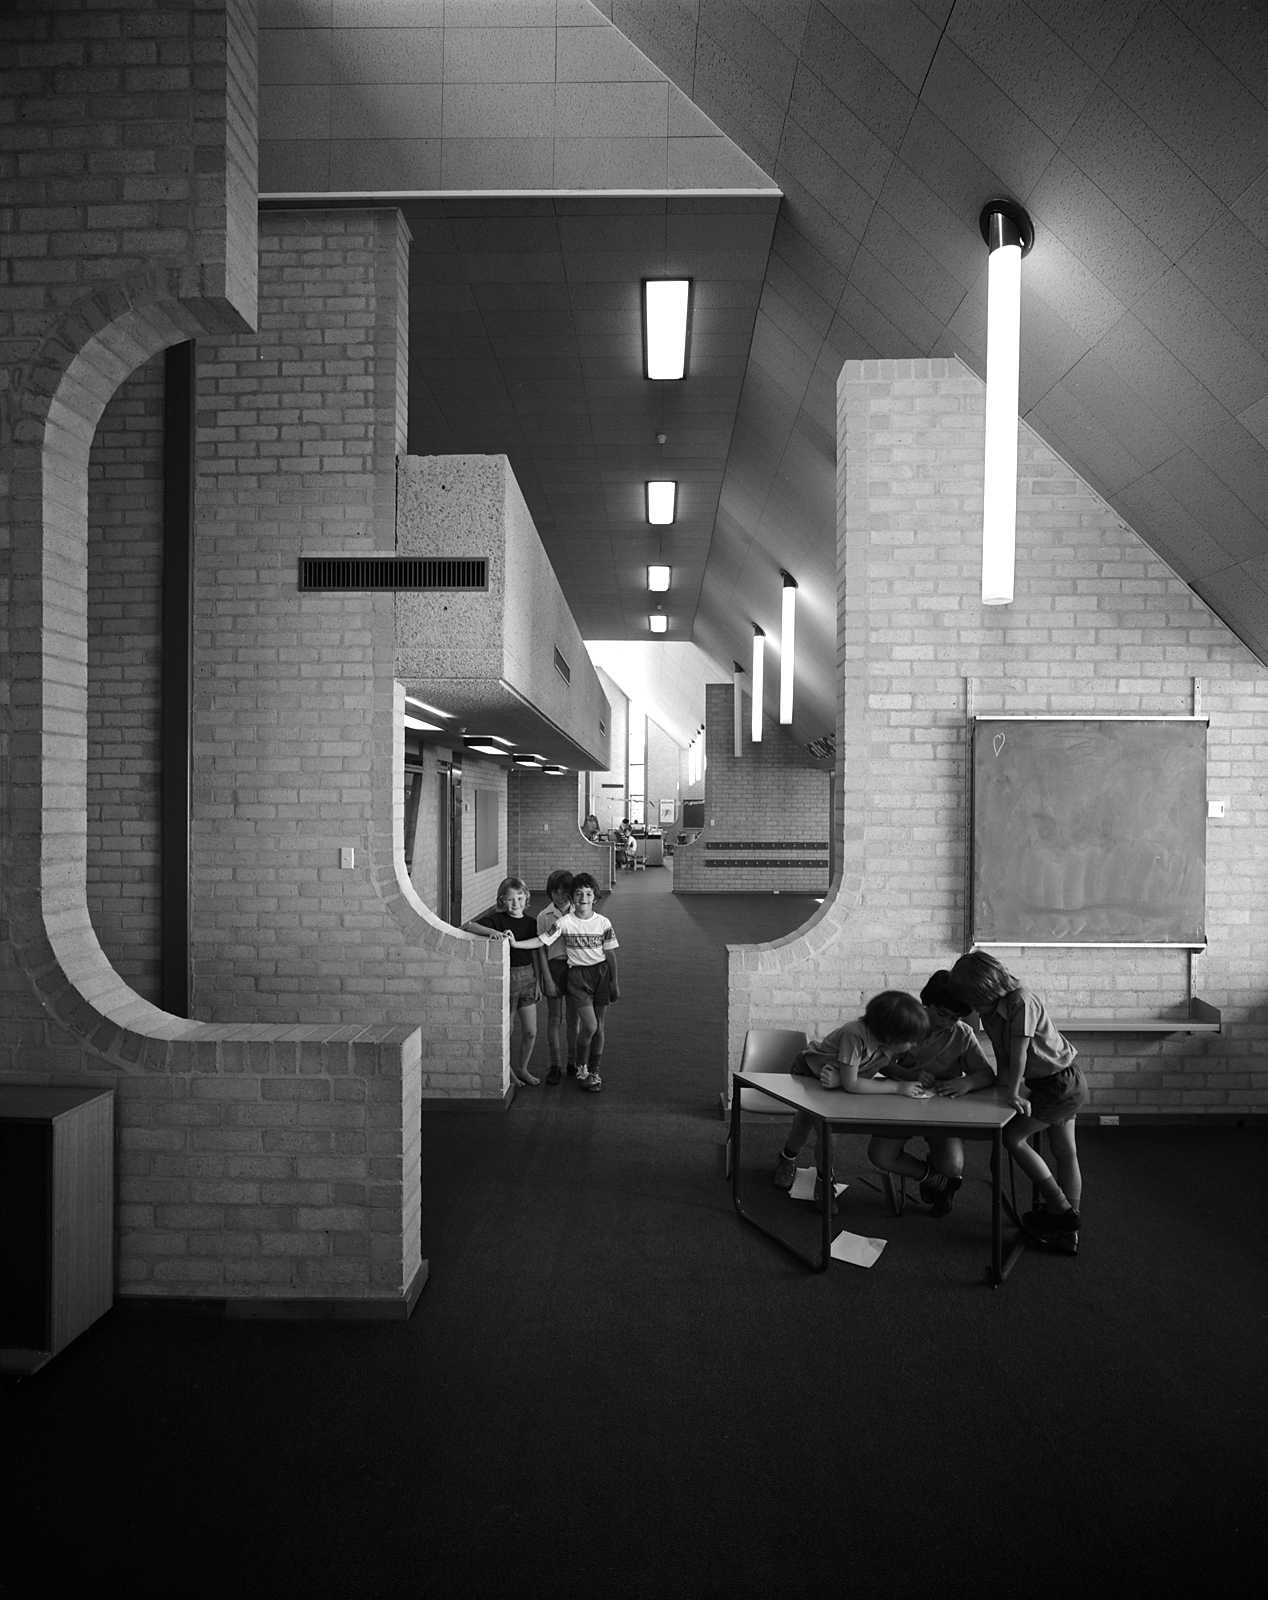 Figure 2. Giralang Primary School, 1975, interior space. Photo by Max Dupain, courtesy of Enrico Taglietti.